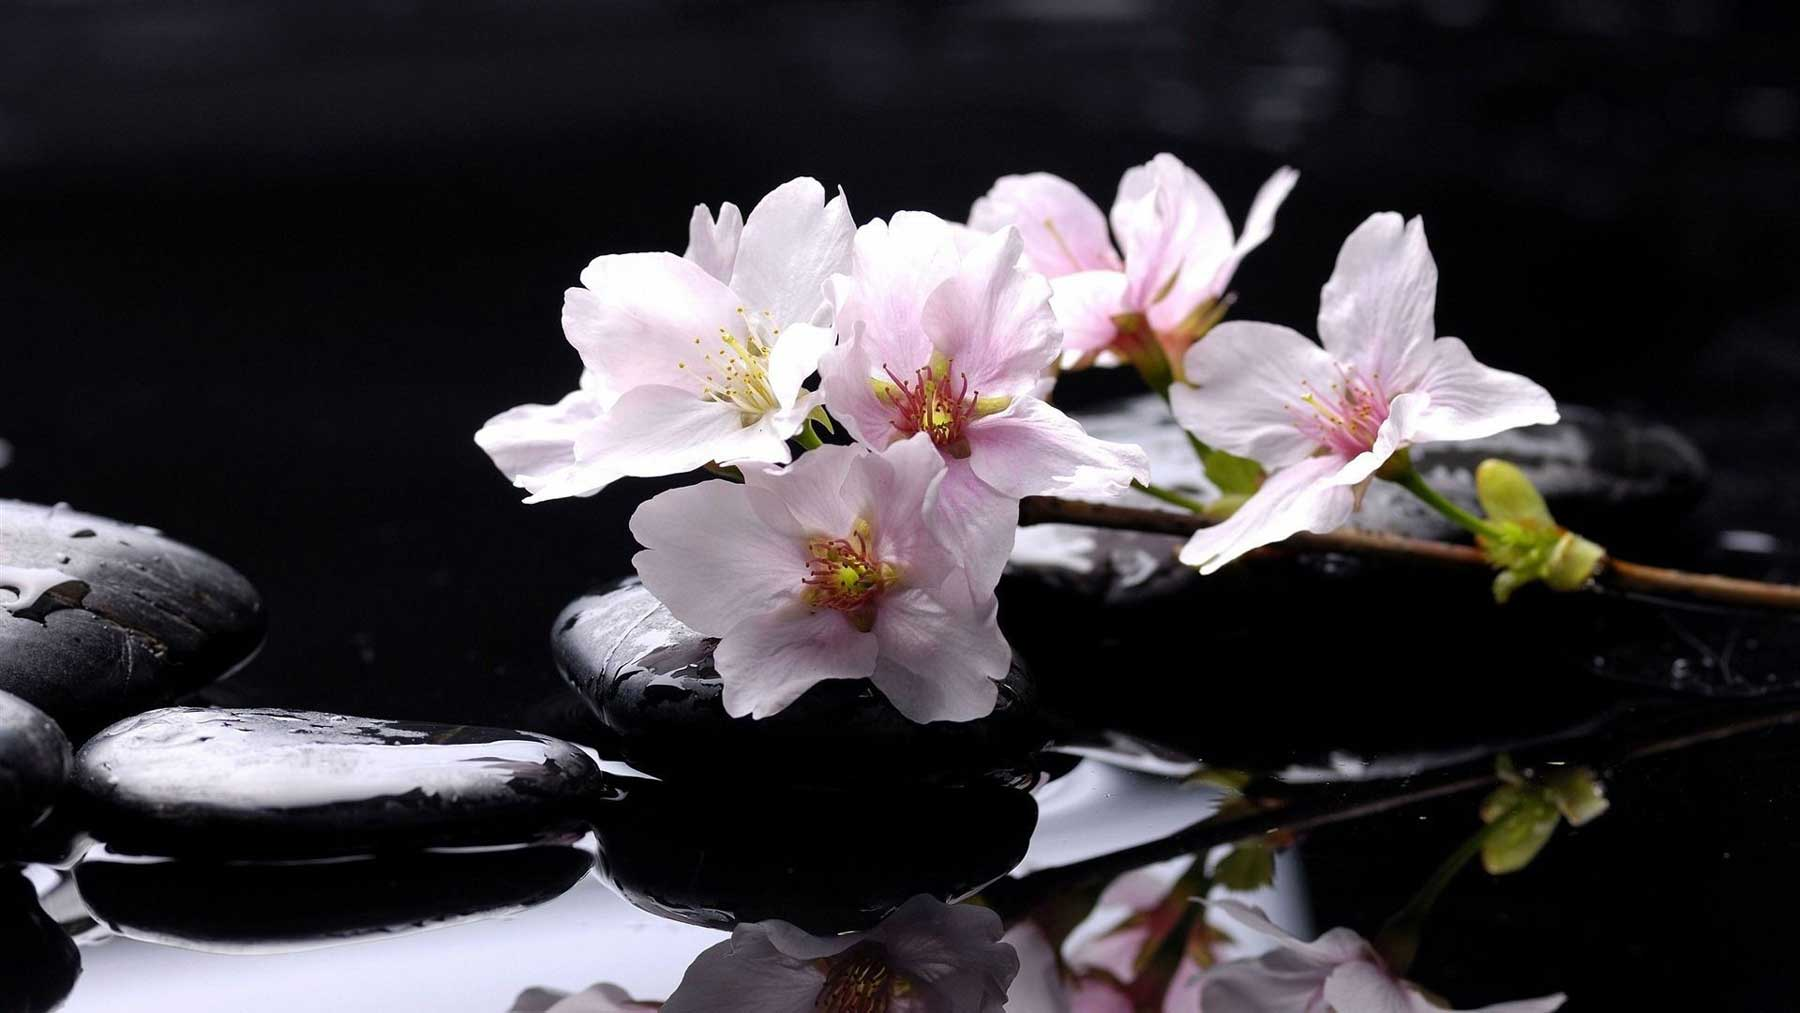 theraphy spa nature clean foot flowers colors sakura flower desktop background Inspirational Zen Stones Flowers Desktop Wallpapers Wallpaper Download